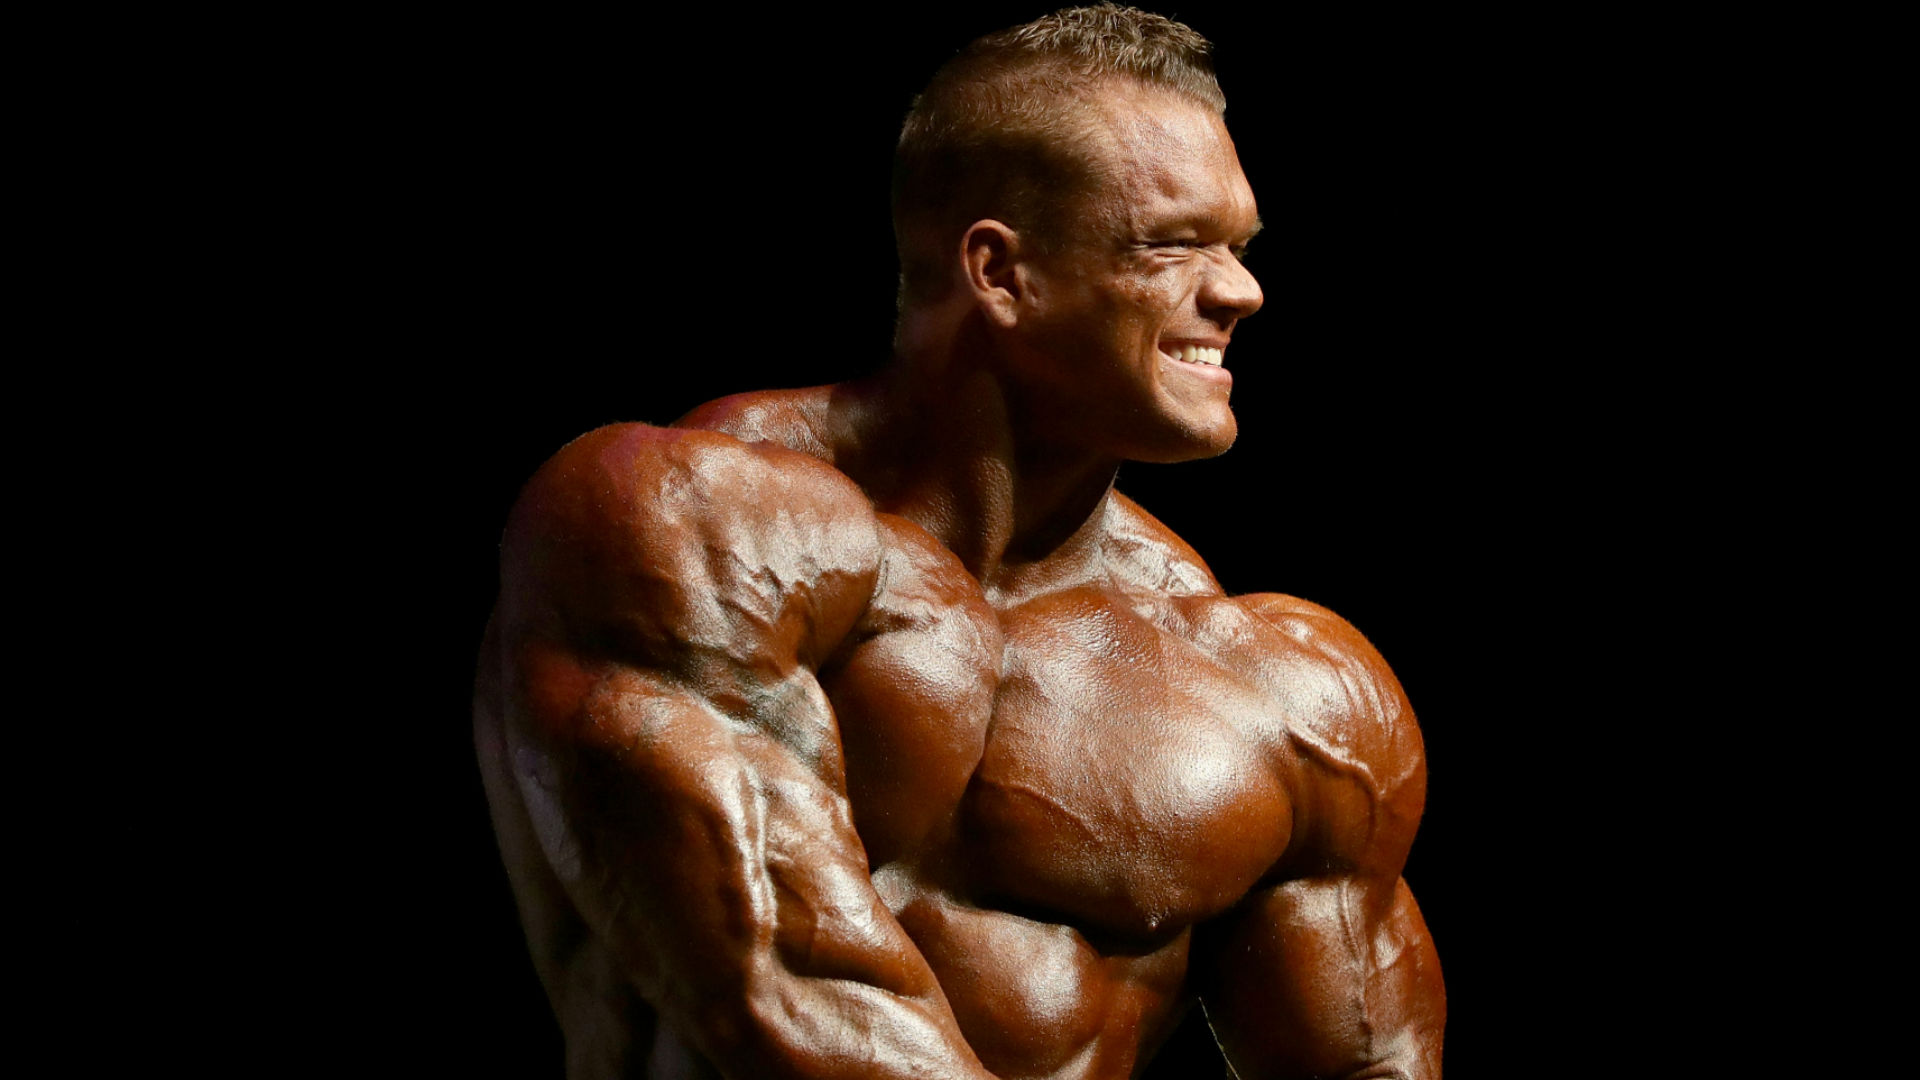 Dana Brooke's Boyfriend Dallas McCarver Passes Away